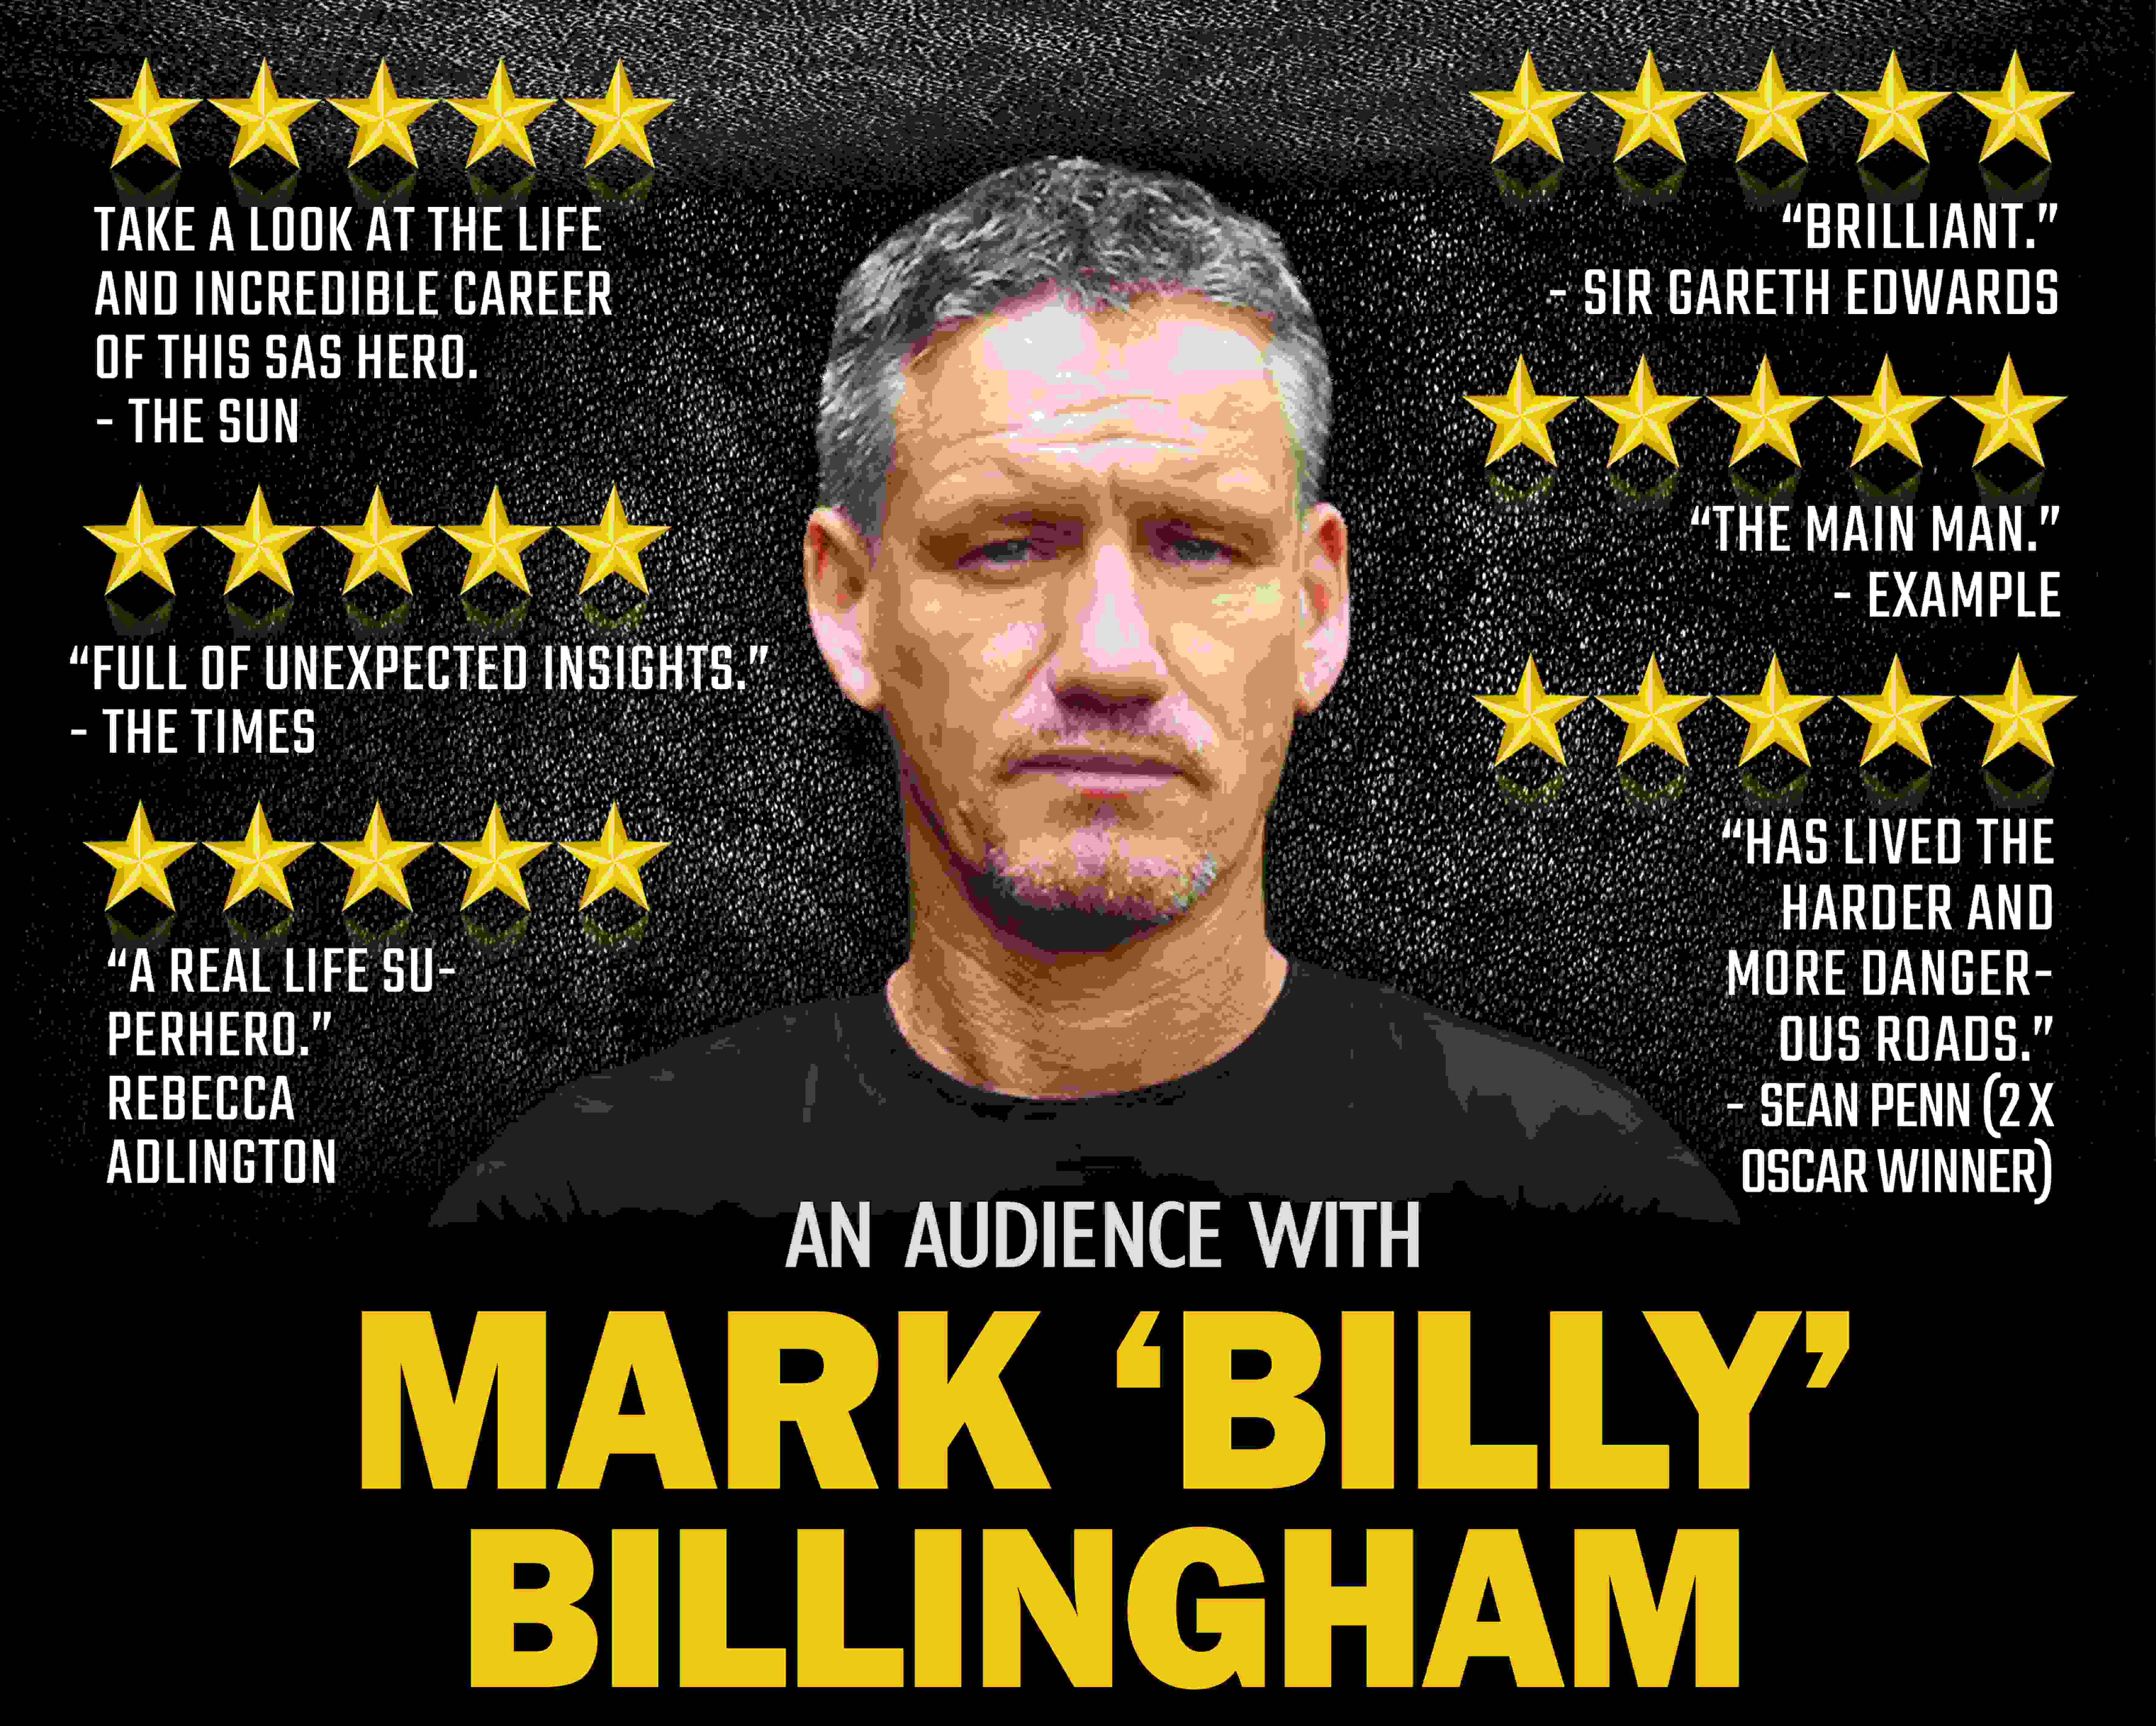 An Audience with Mark Billingham